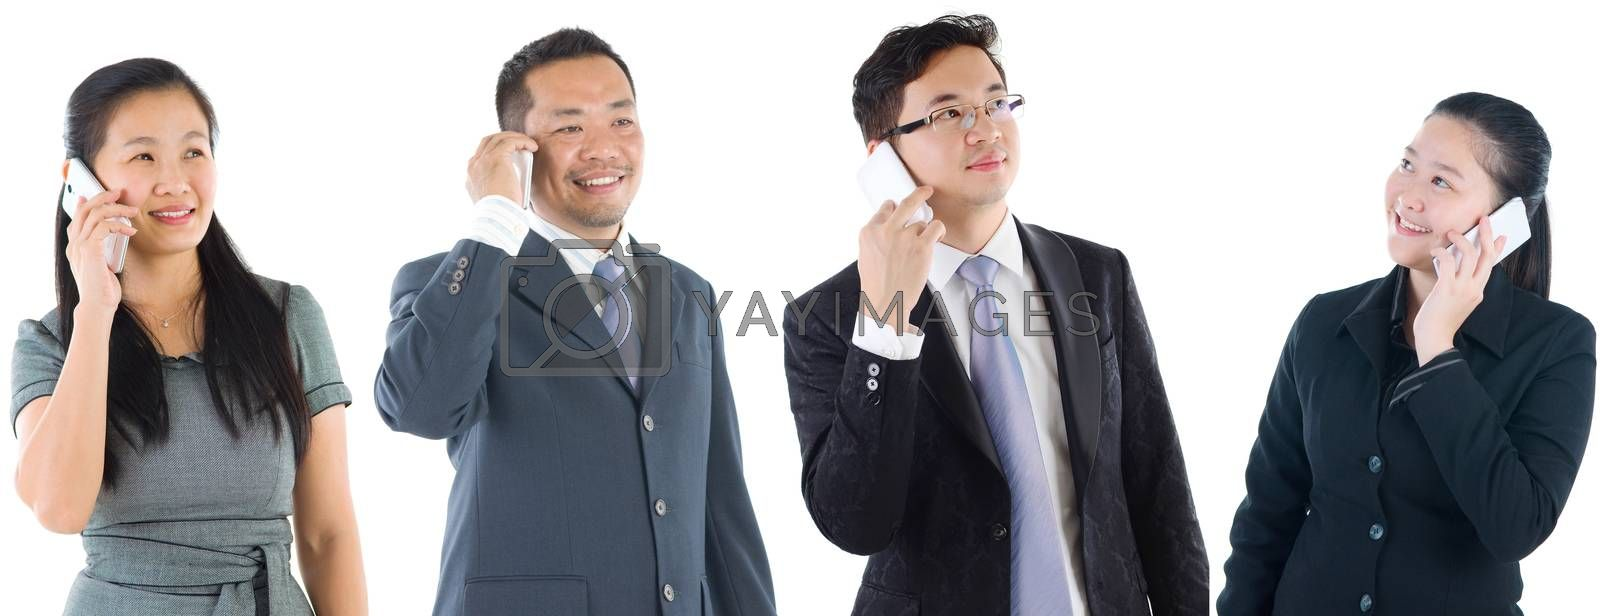 Portraits of diverse asian people and mixed age group of business professionals making call with smartphone.Concept of financial, technology and marketing business.